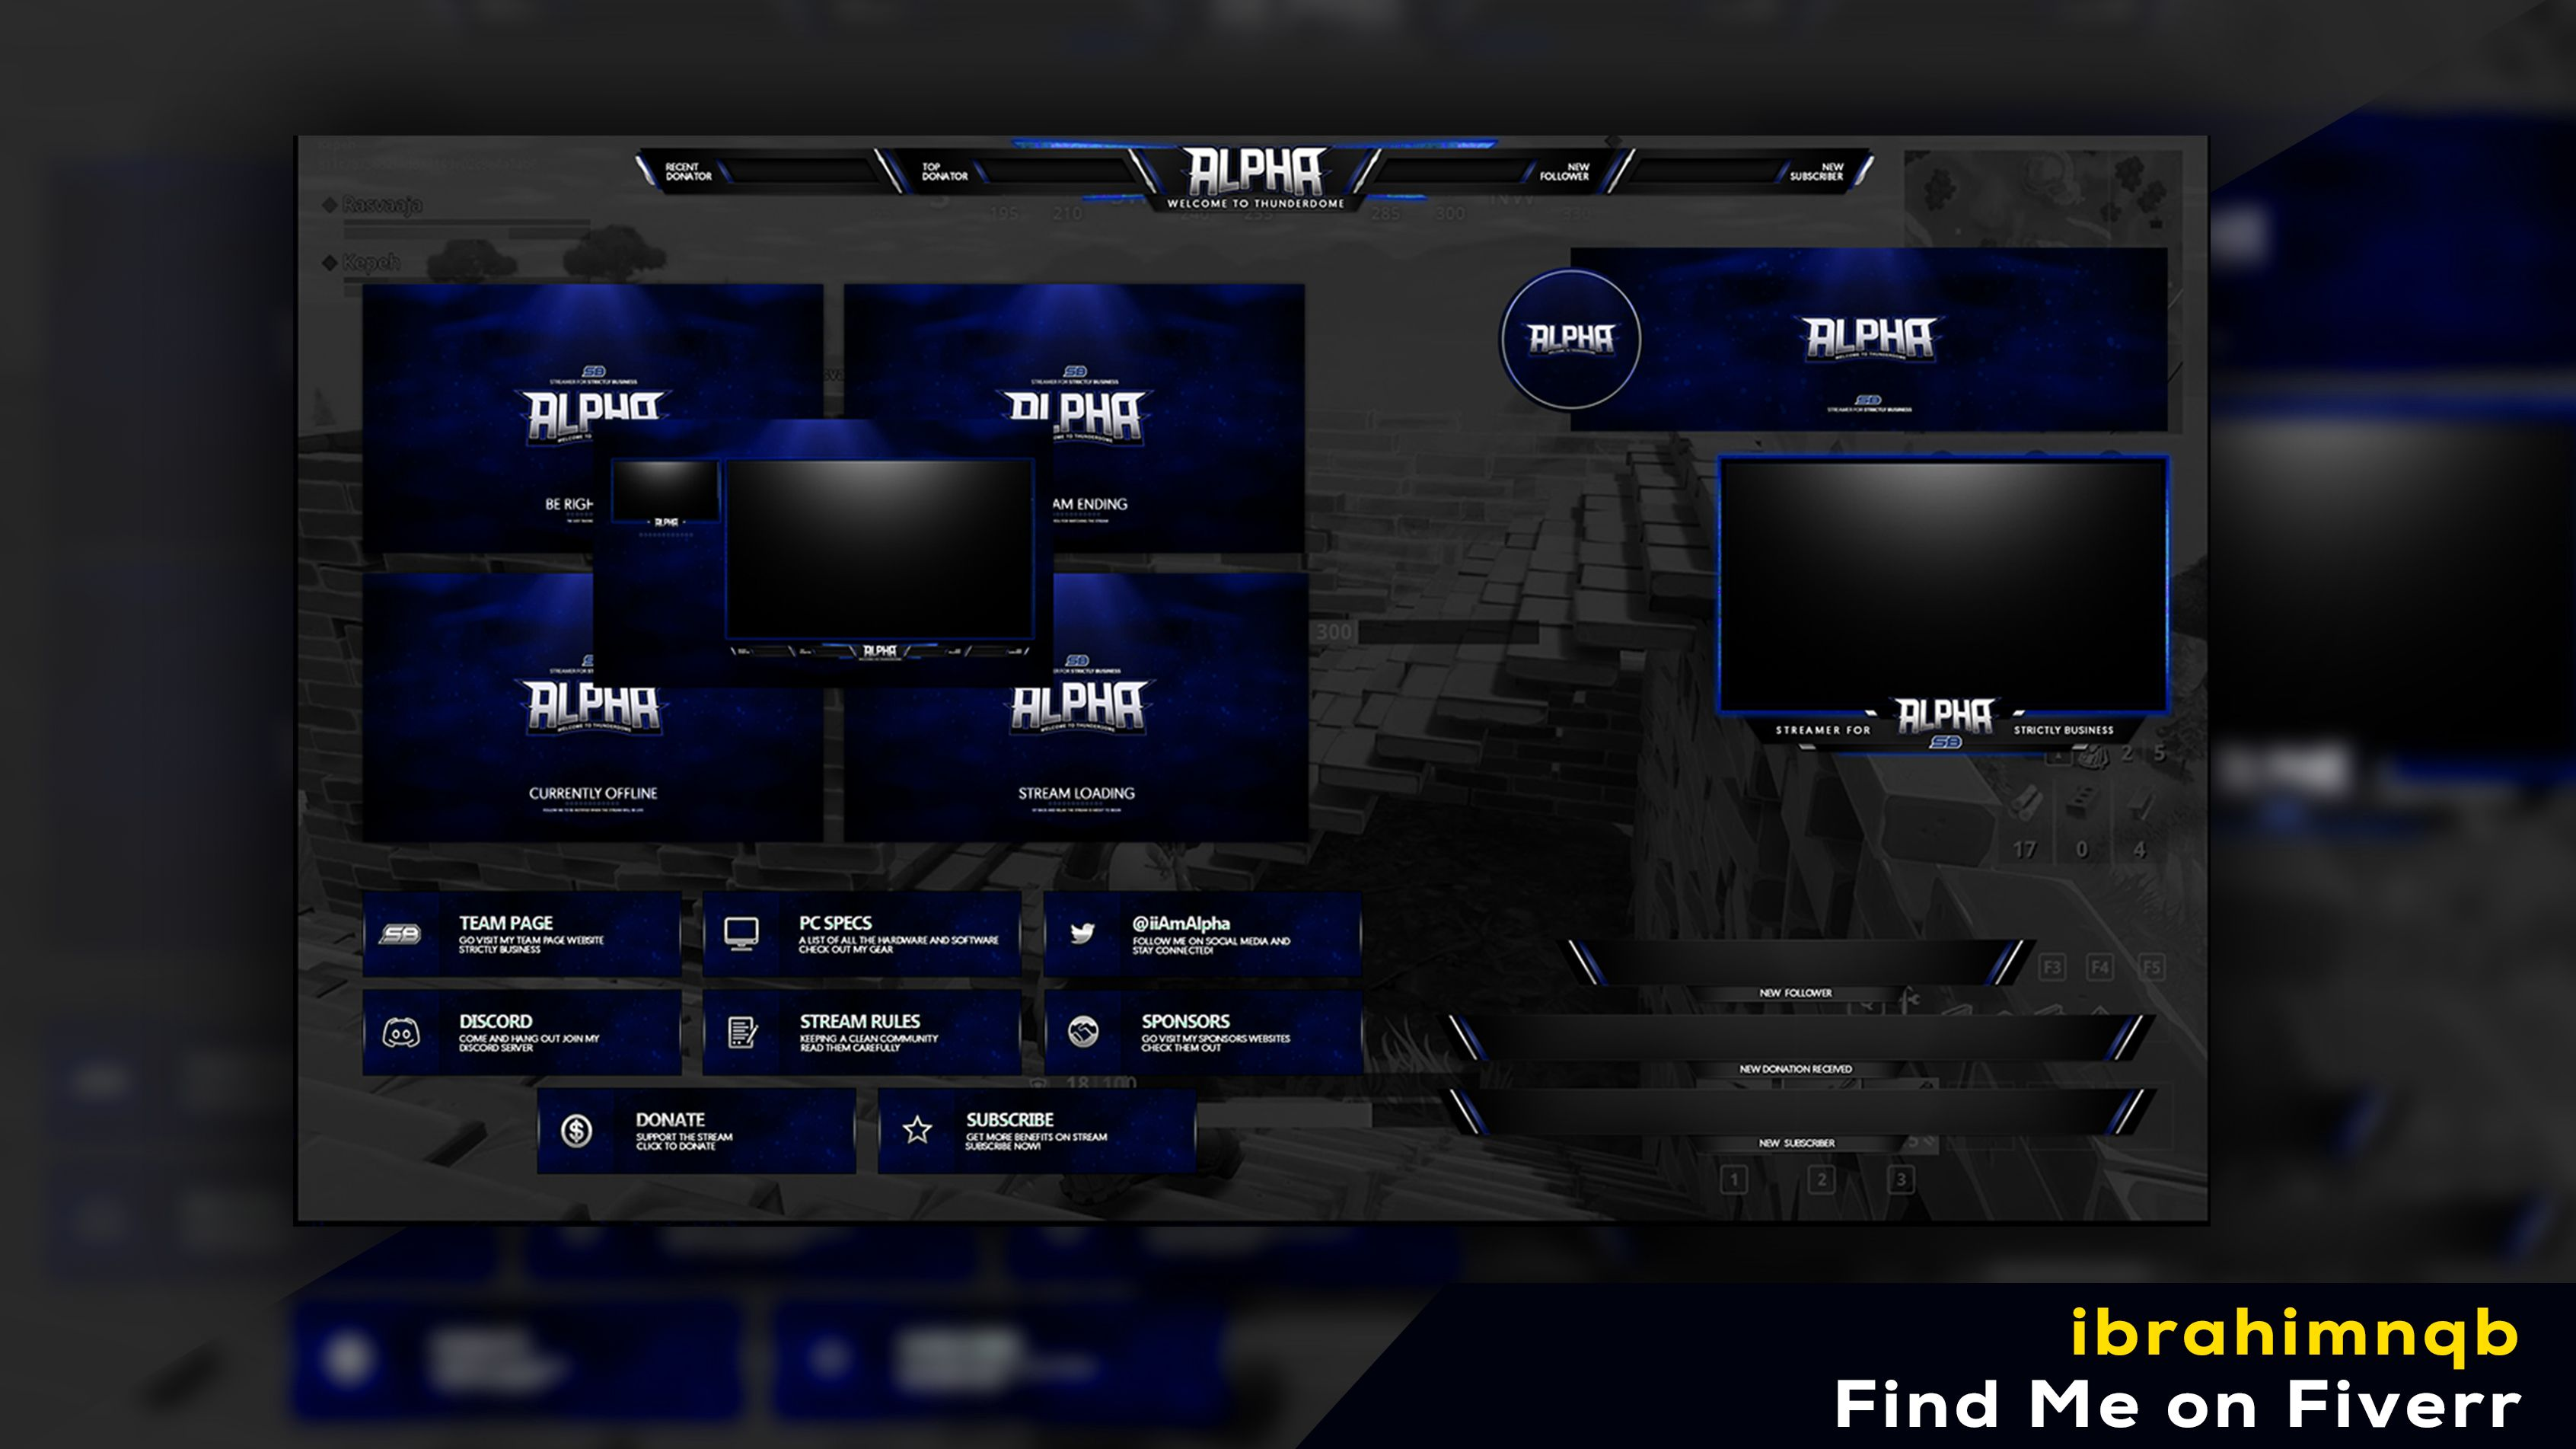 twitch overlay in 2020 Graphic design services, Overlays